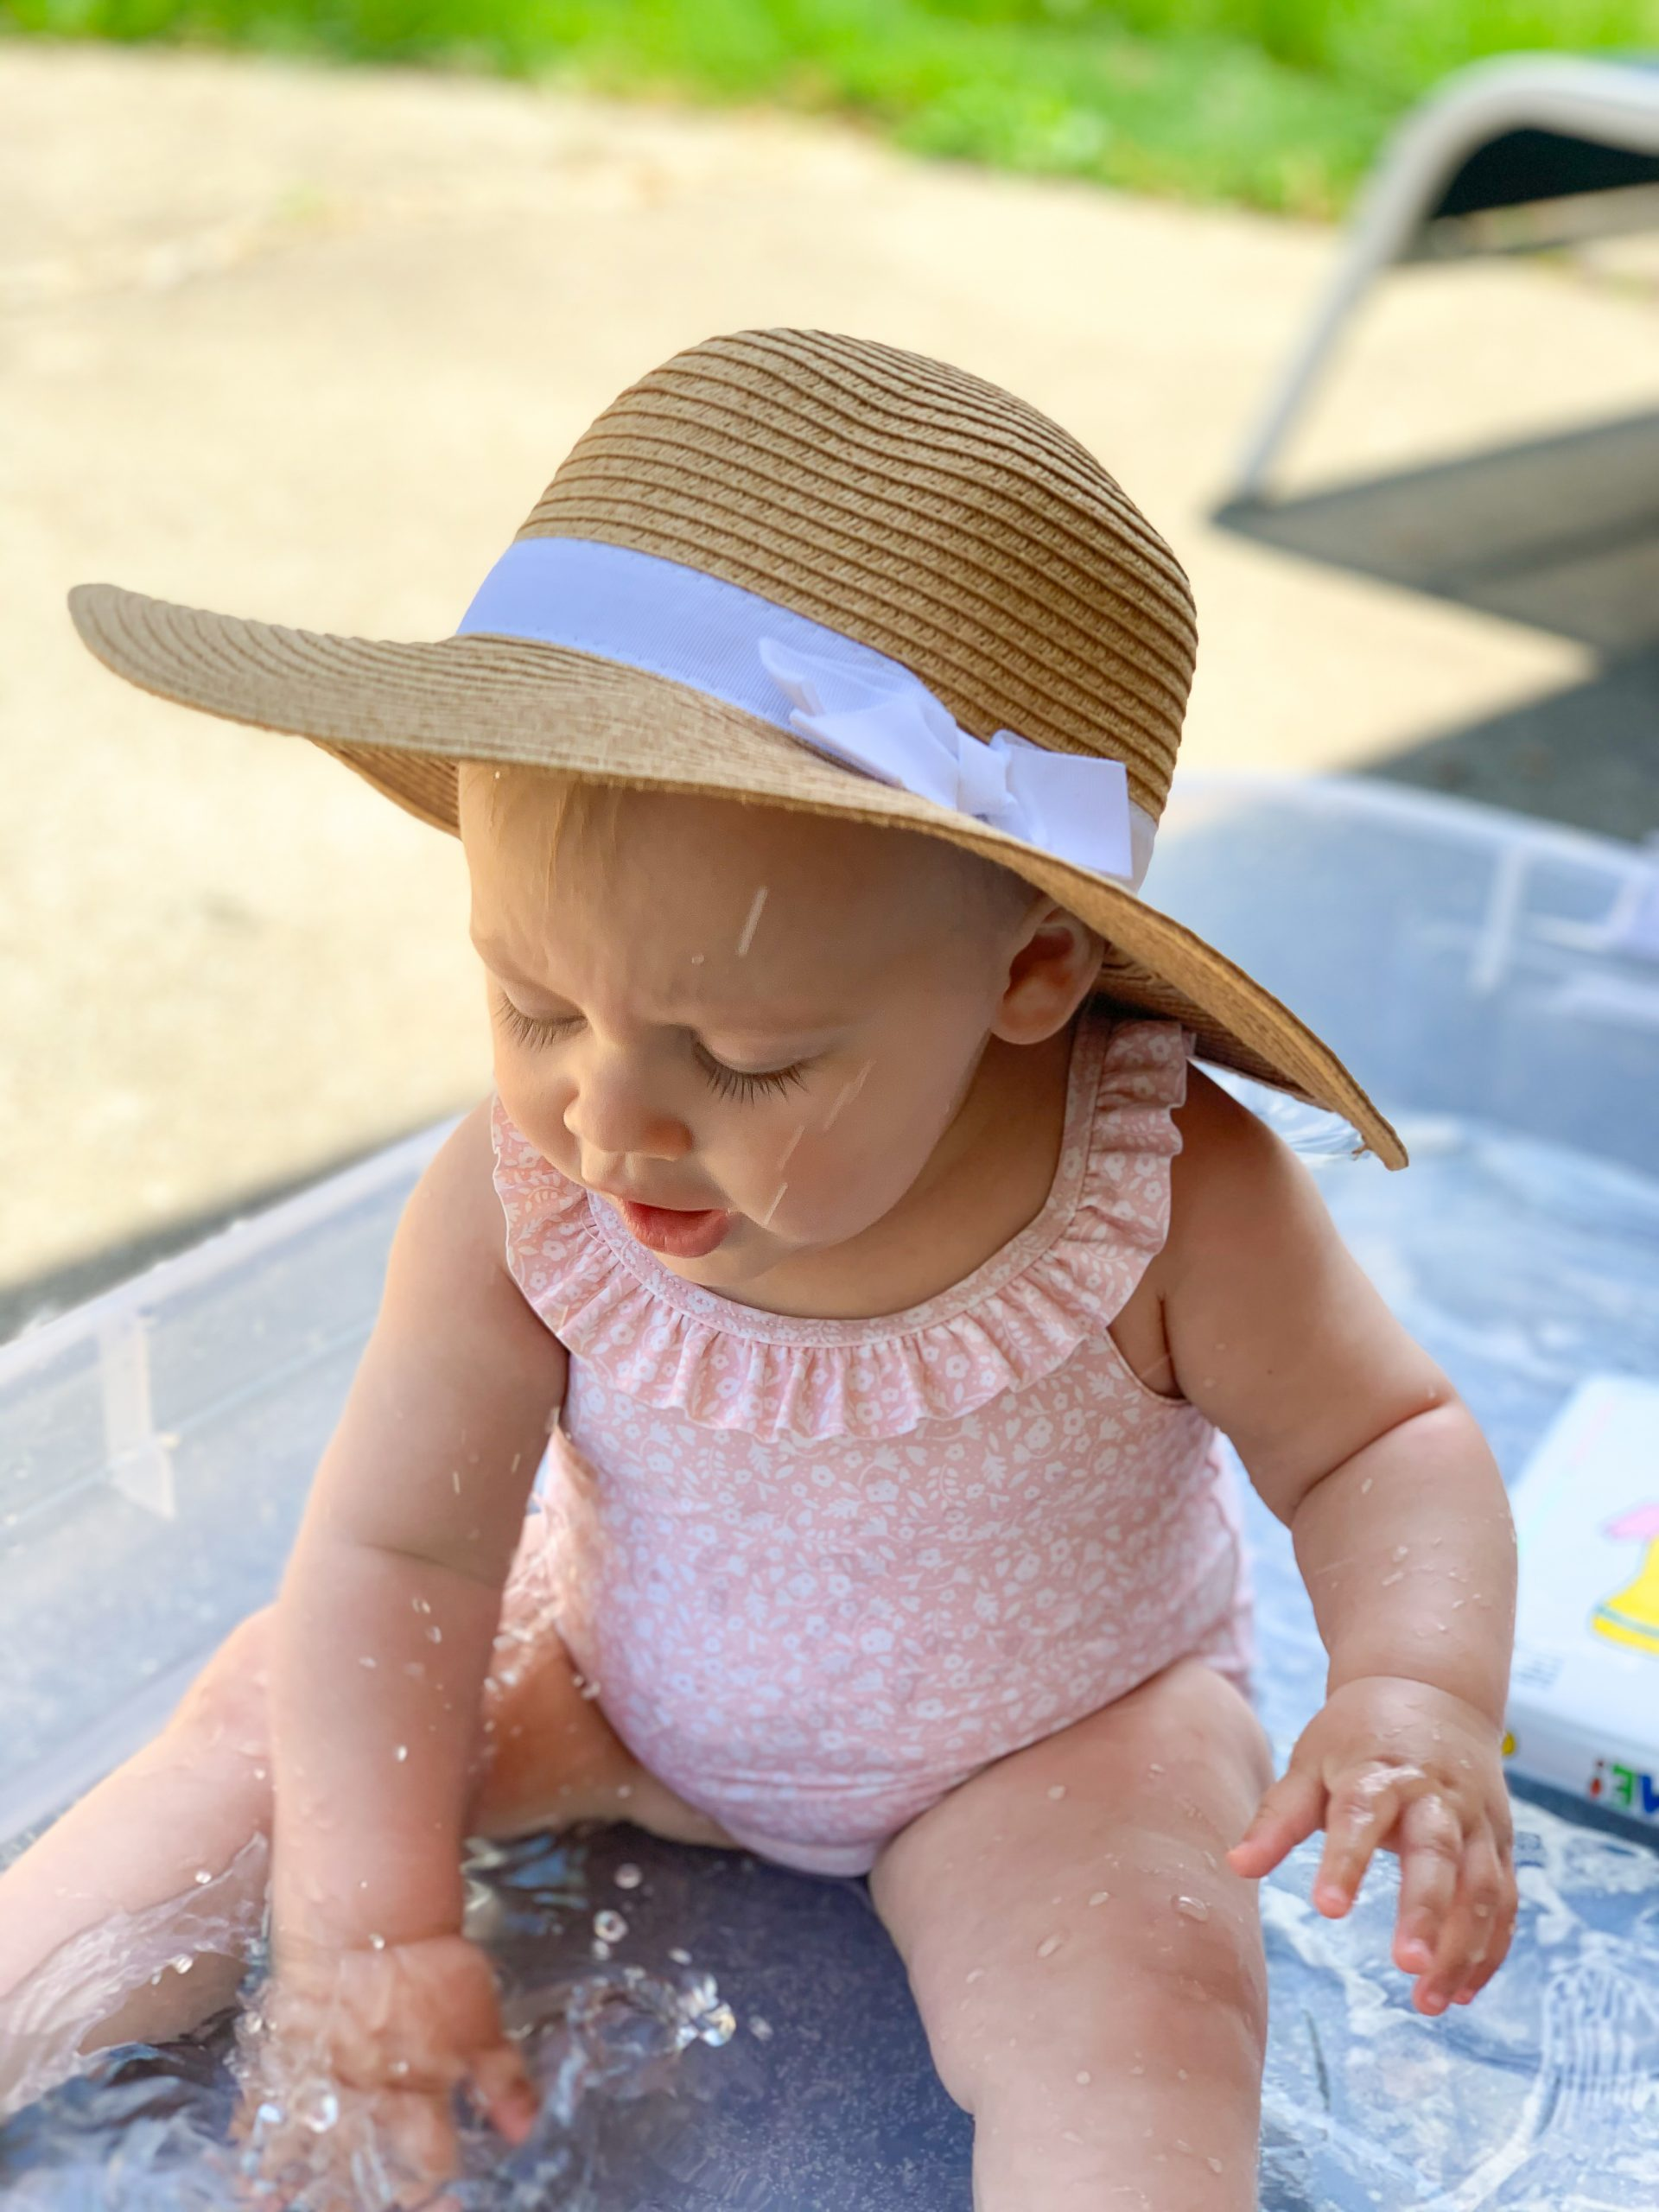 baby sun hat, h&m baby swimsuit 2020, pink floral baby swimsuit, preppy baby hats